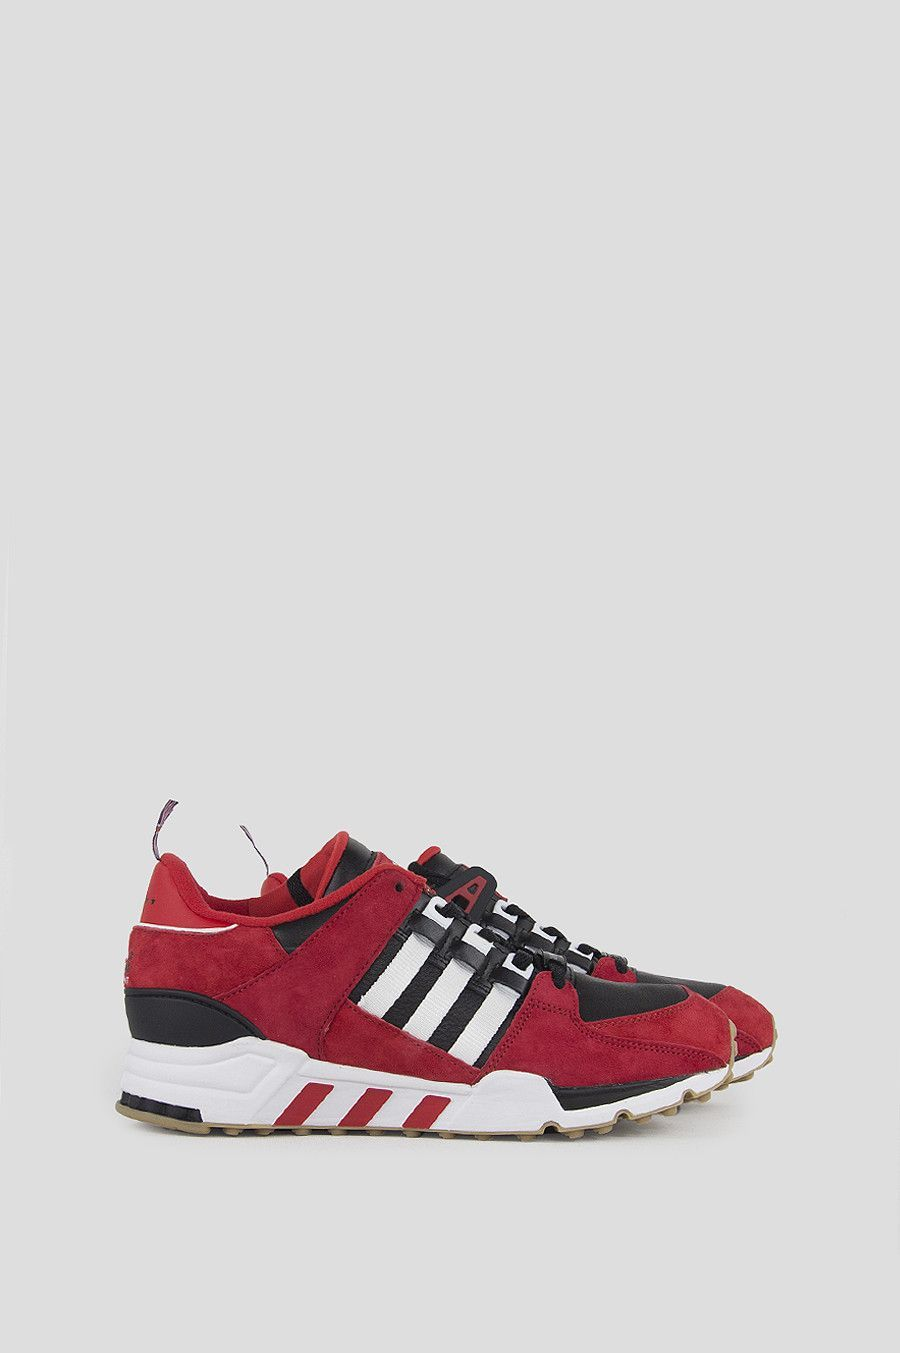 newest 84fc9 41589 ADIDAS EQT RUNNING SUPPORT 93